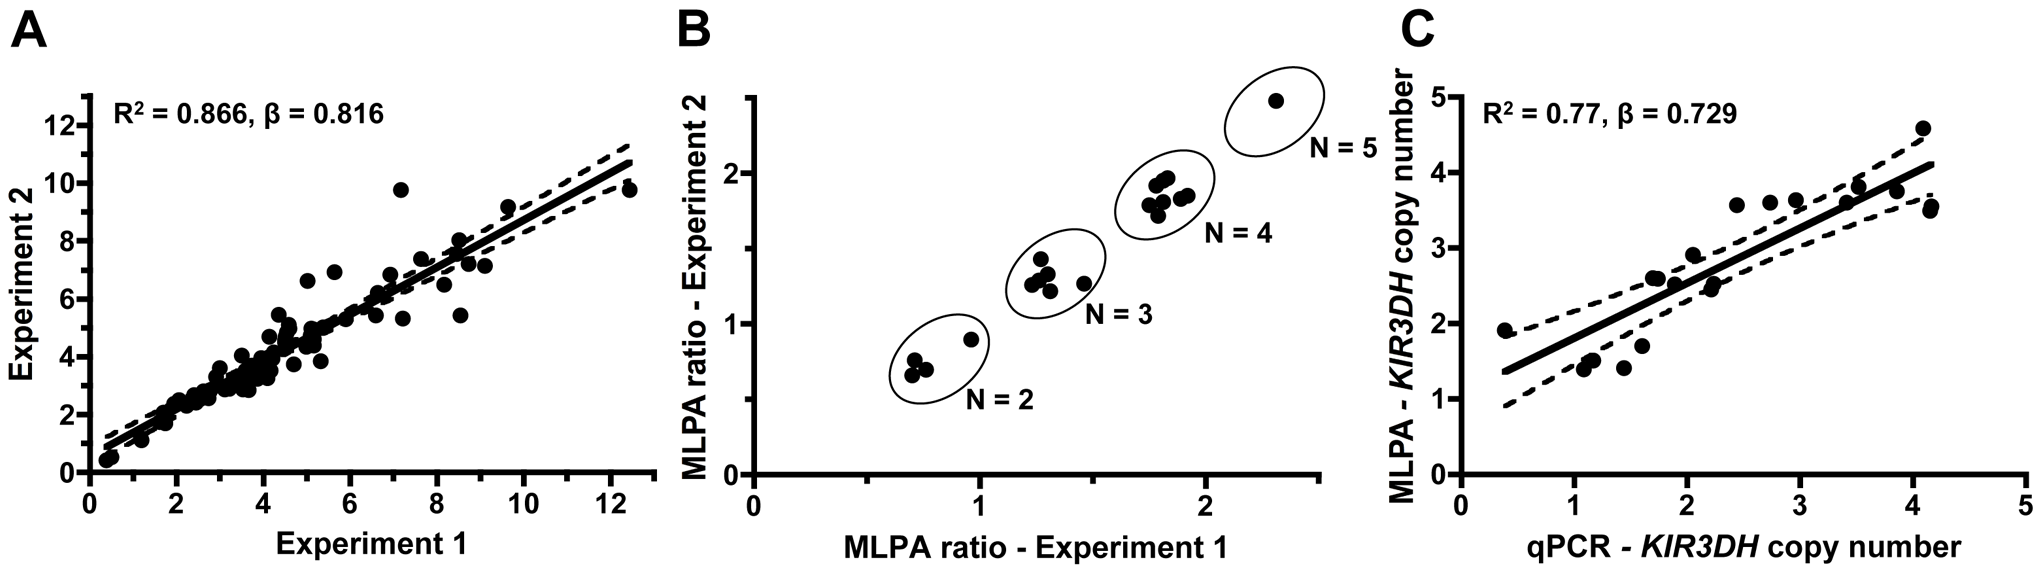 Intra-run reproducibility in <i>KIR3DH</i> copy number determination and validation of quantitative real-time PCR estimates of <i>KIR3DH</i> copy numbers by MLPA (multiplex ligation-dependent probe amplification).